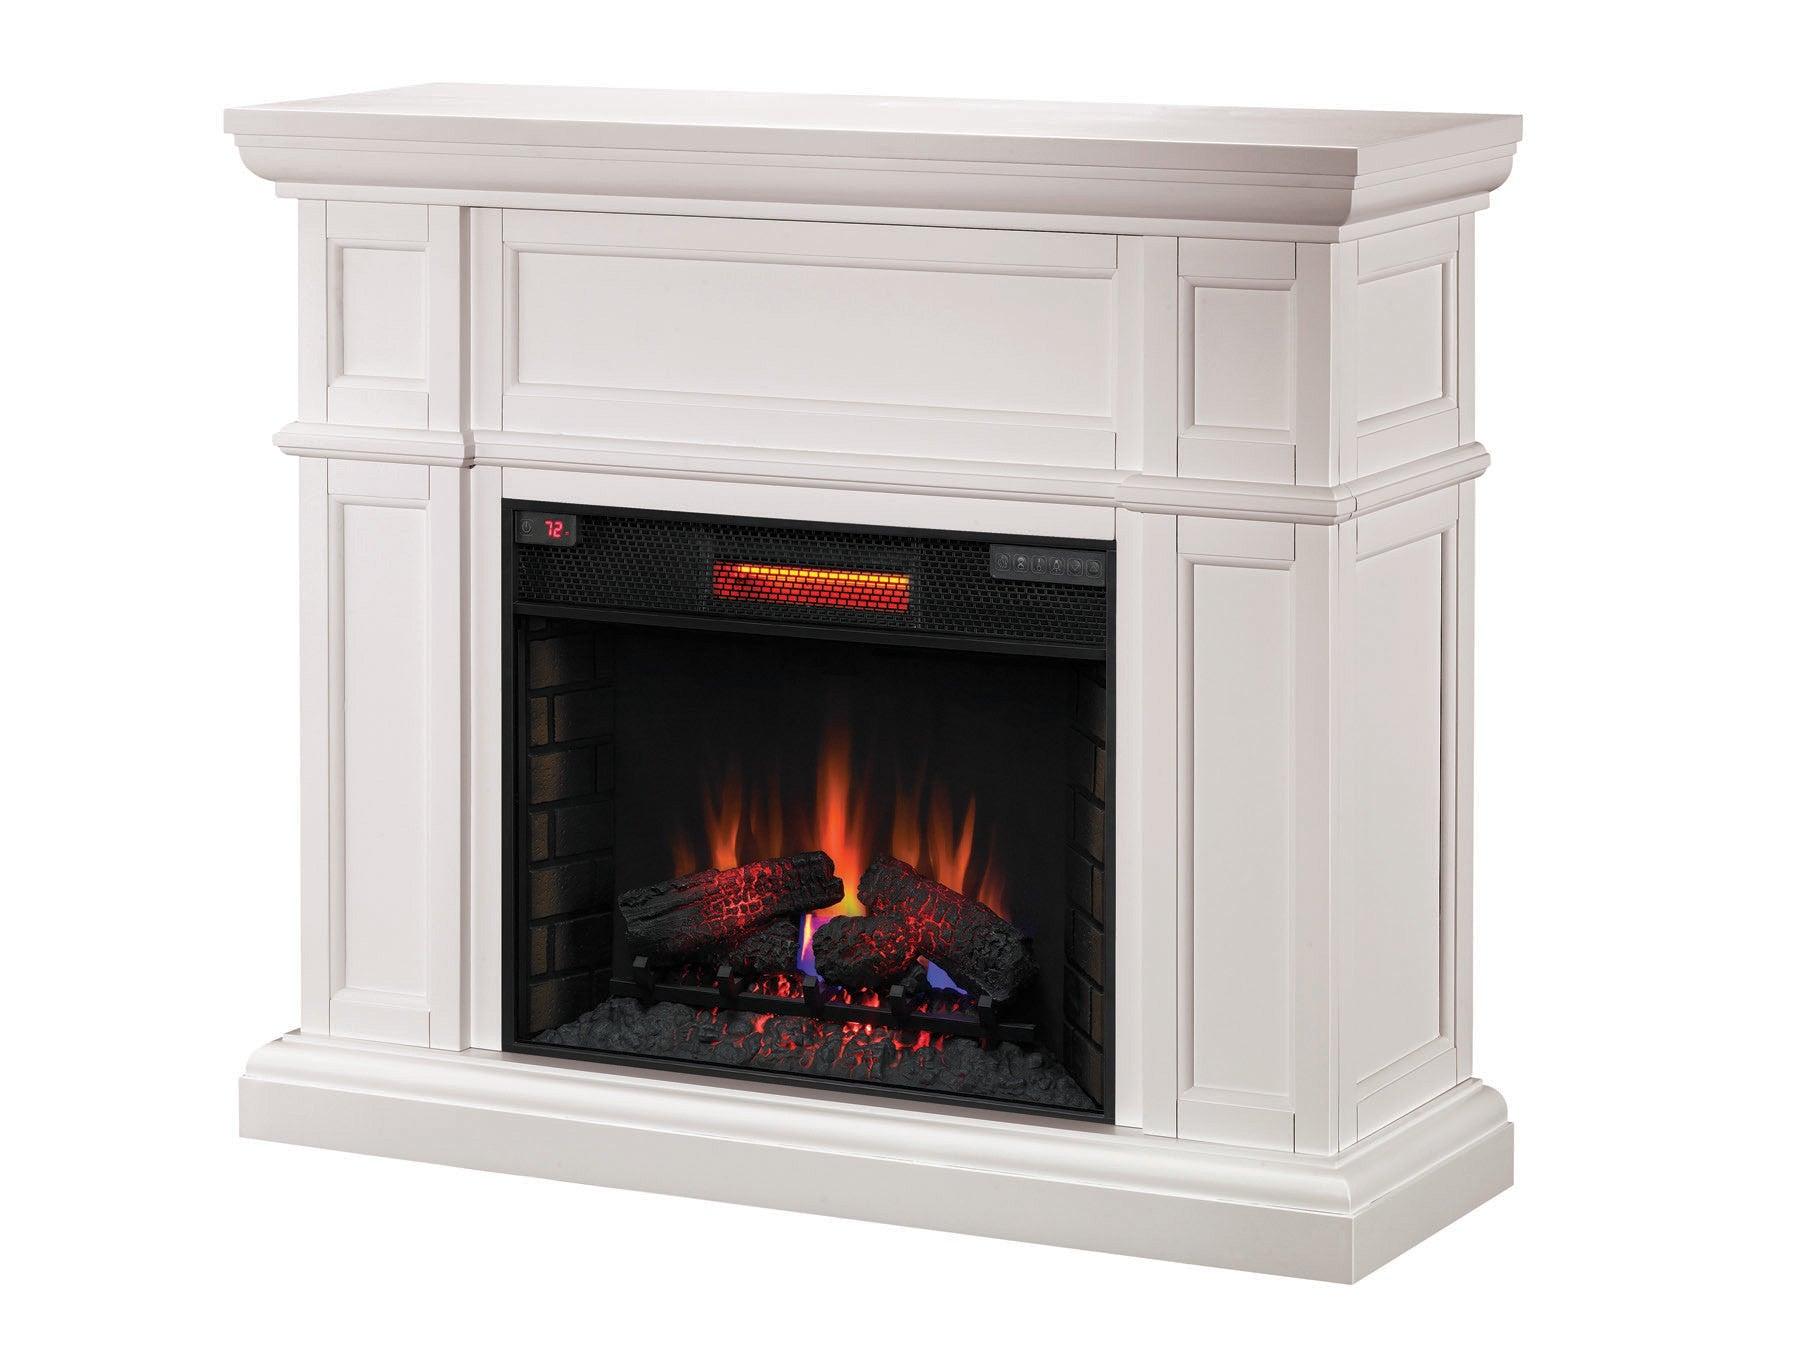 amazon dp classicflame stand larger fireplace com view with white separately electric enterprise tv